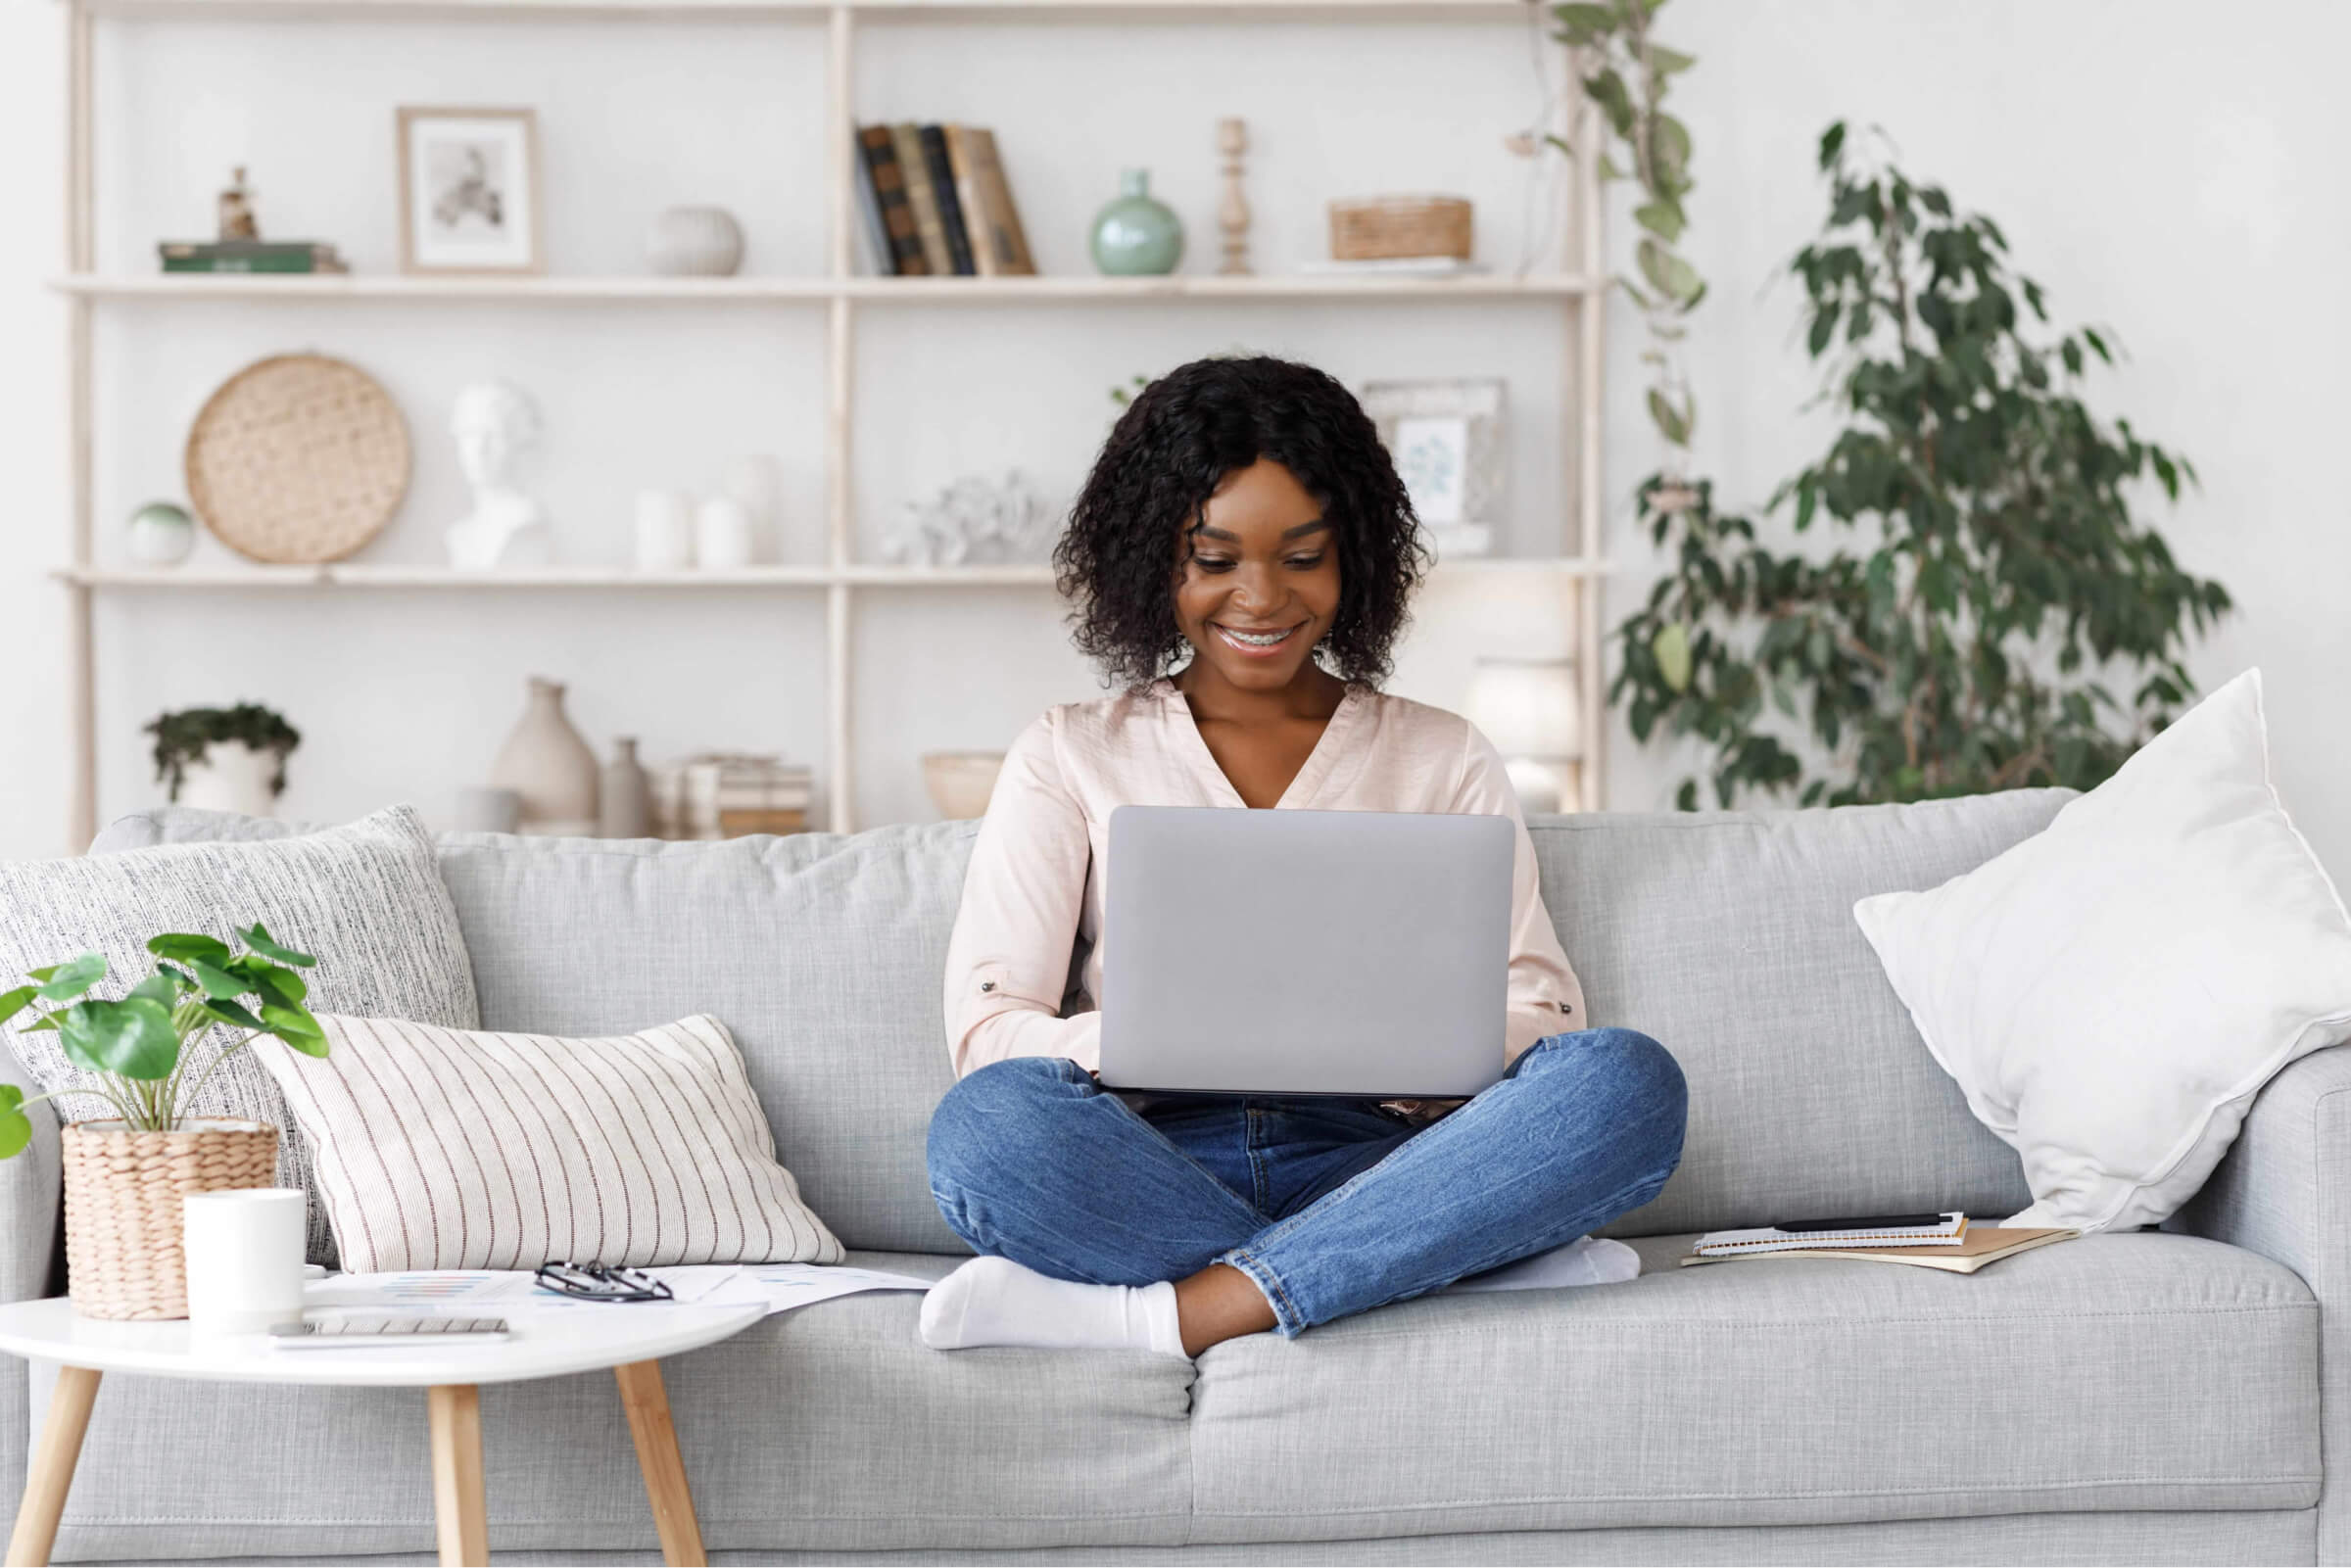 young women on couch with laptop elearning